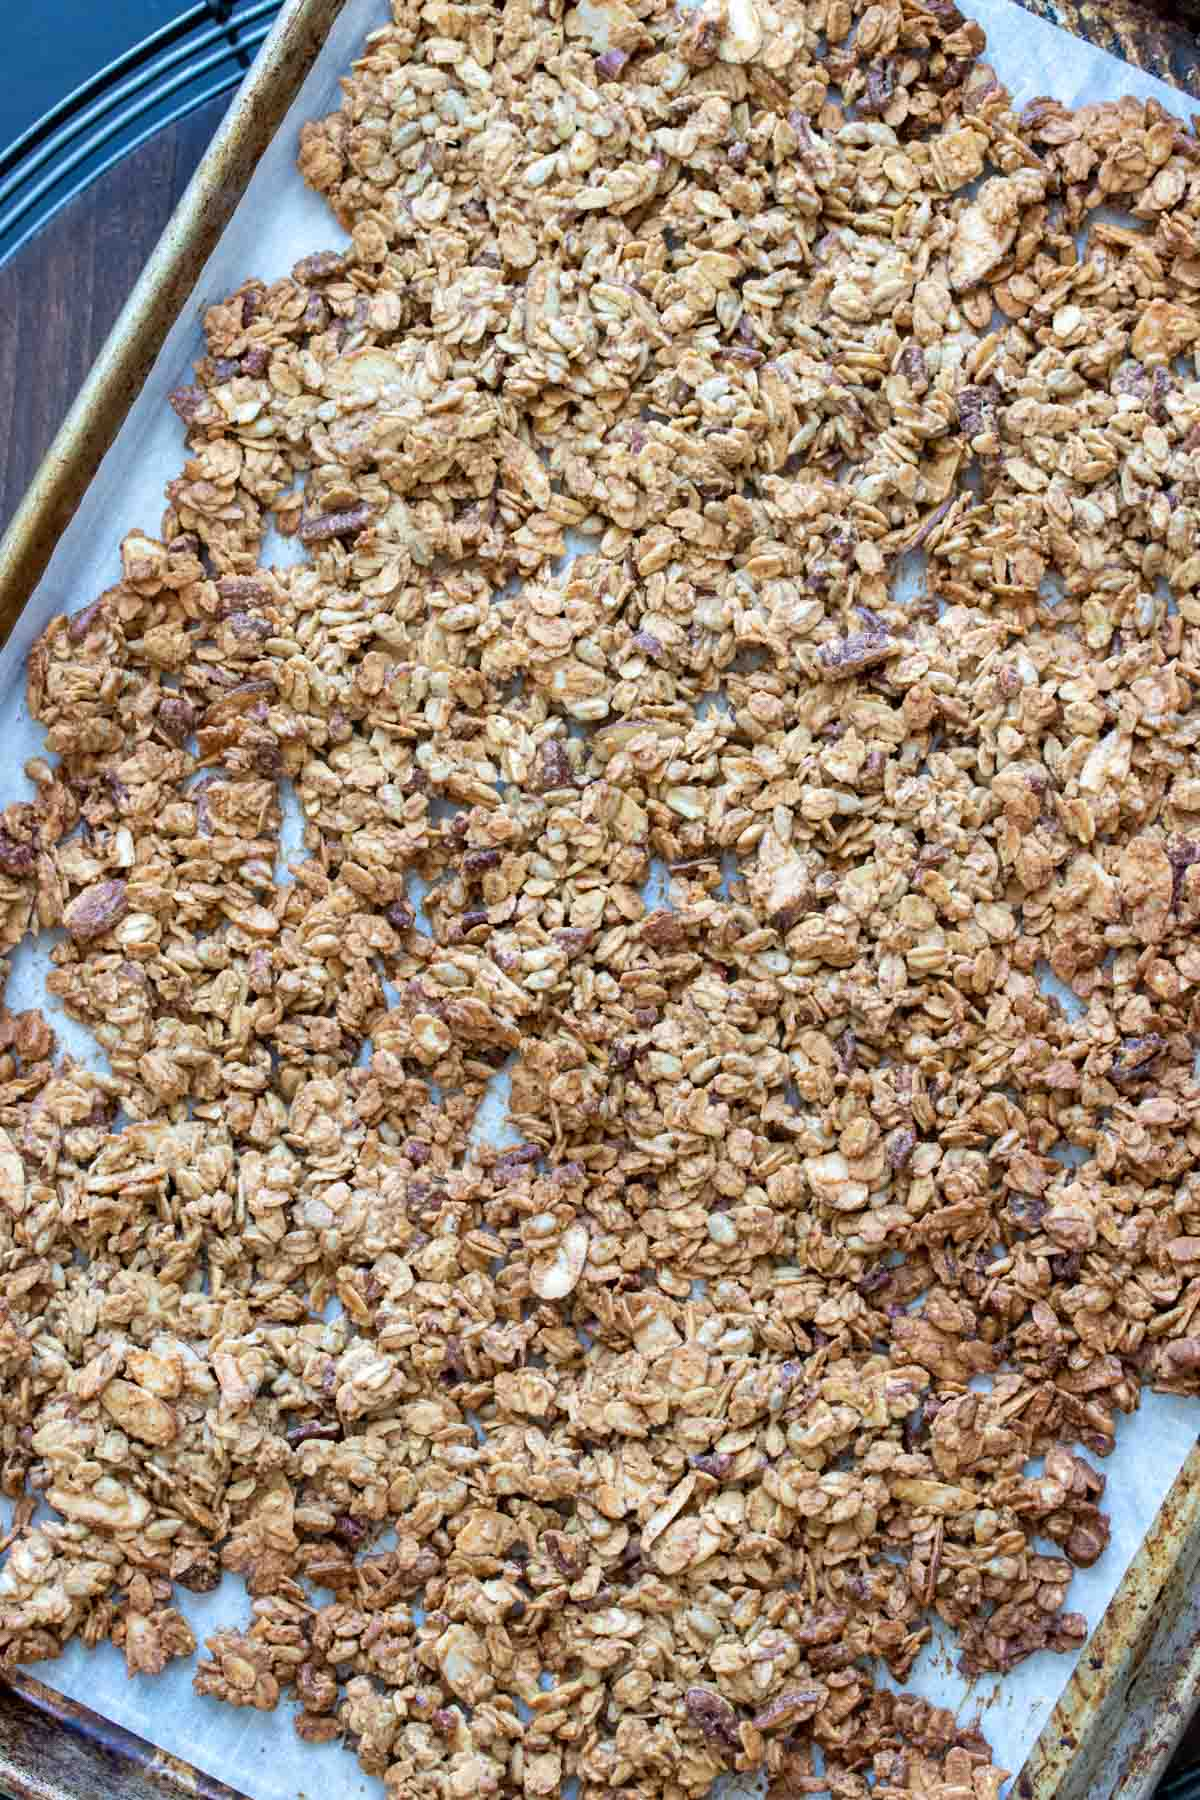 Pan of baked granola spread over it